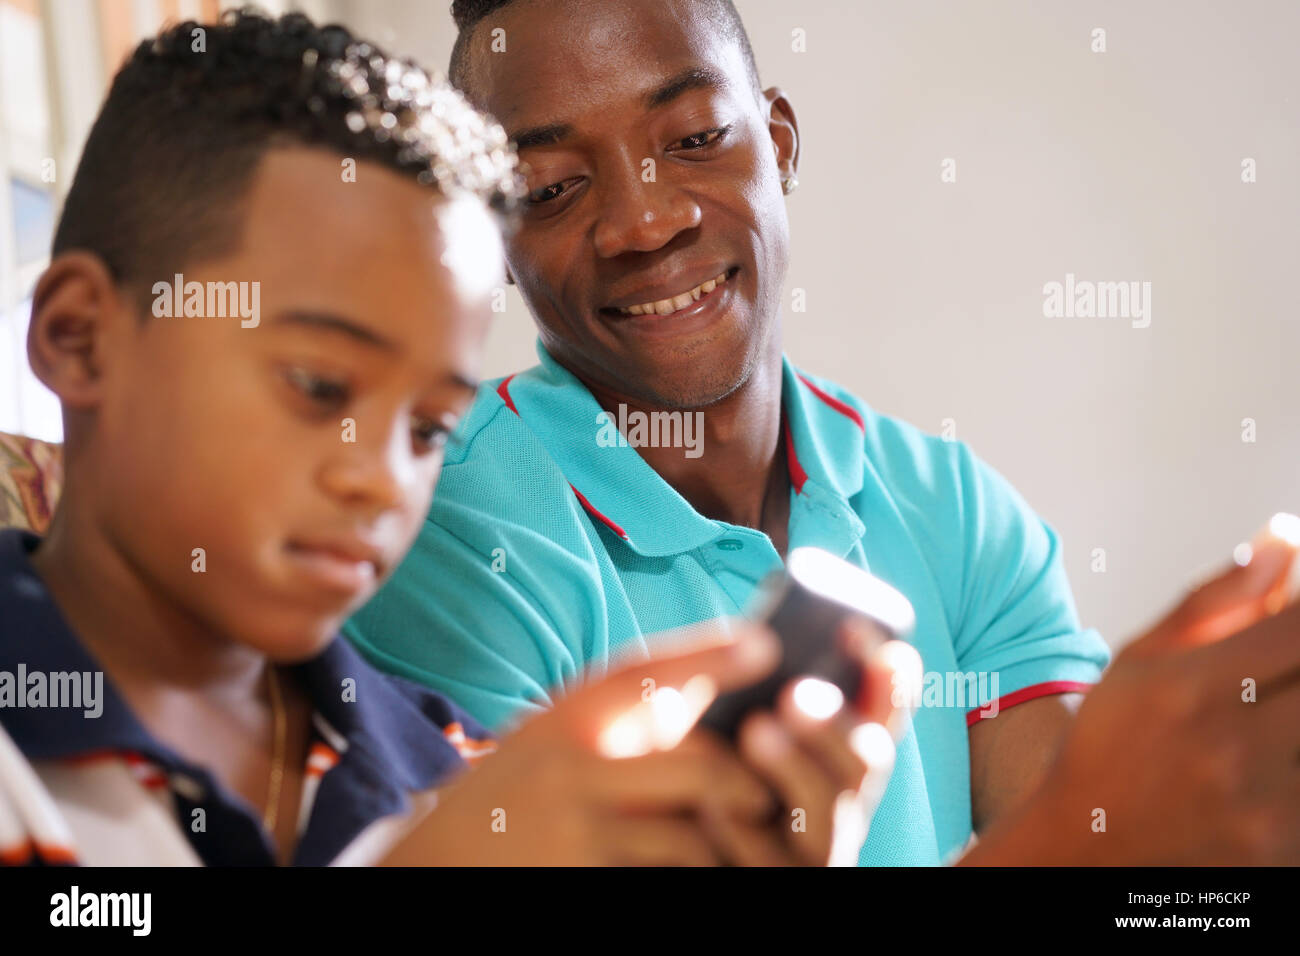 Happy black family at home. African american father and child playing game with cell phone. Hispanic dad and son - Stock Image